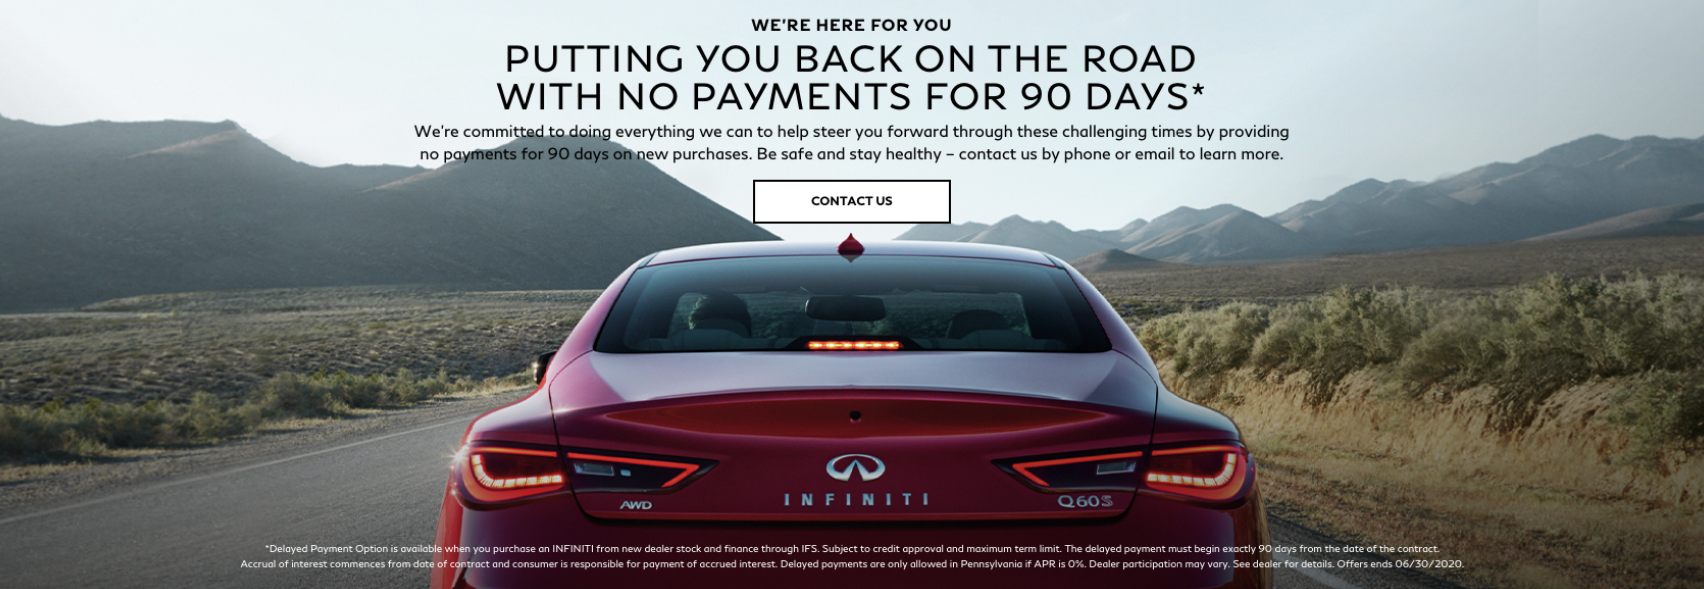 Putting you back on the road with no payments for 90 days.